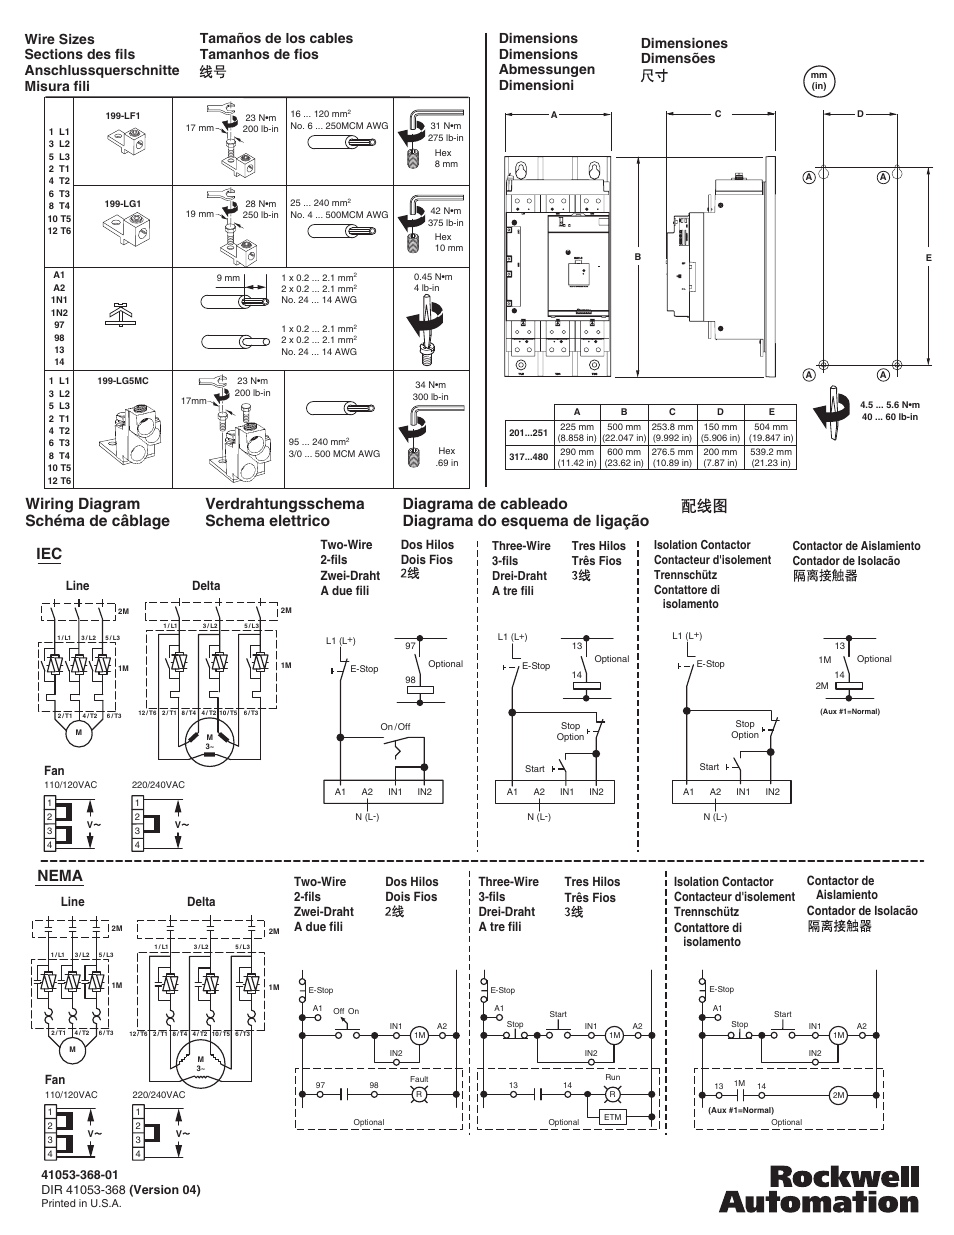 rockwell automation 150 smc 3 201a 480a soft starter 3 phase installations page4 wiring diagram sch�ma de c�blage iec, nema, verdrahtungsschema smc fan wiring diagram at eliteediting.co